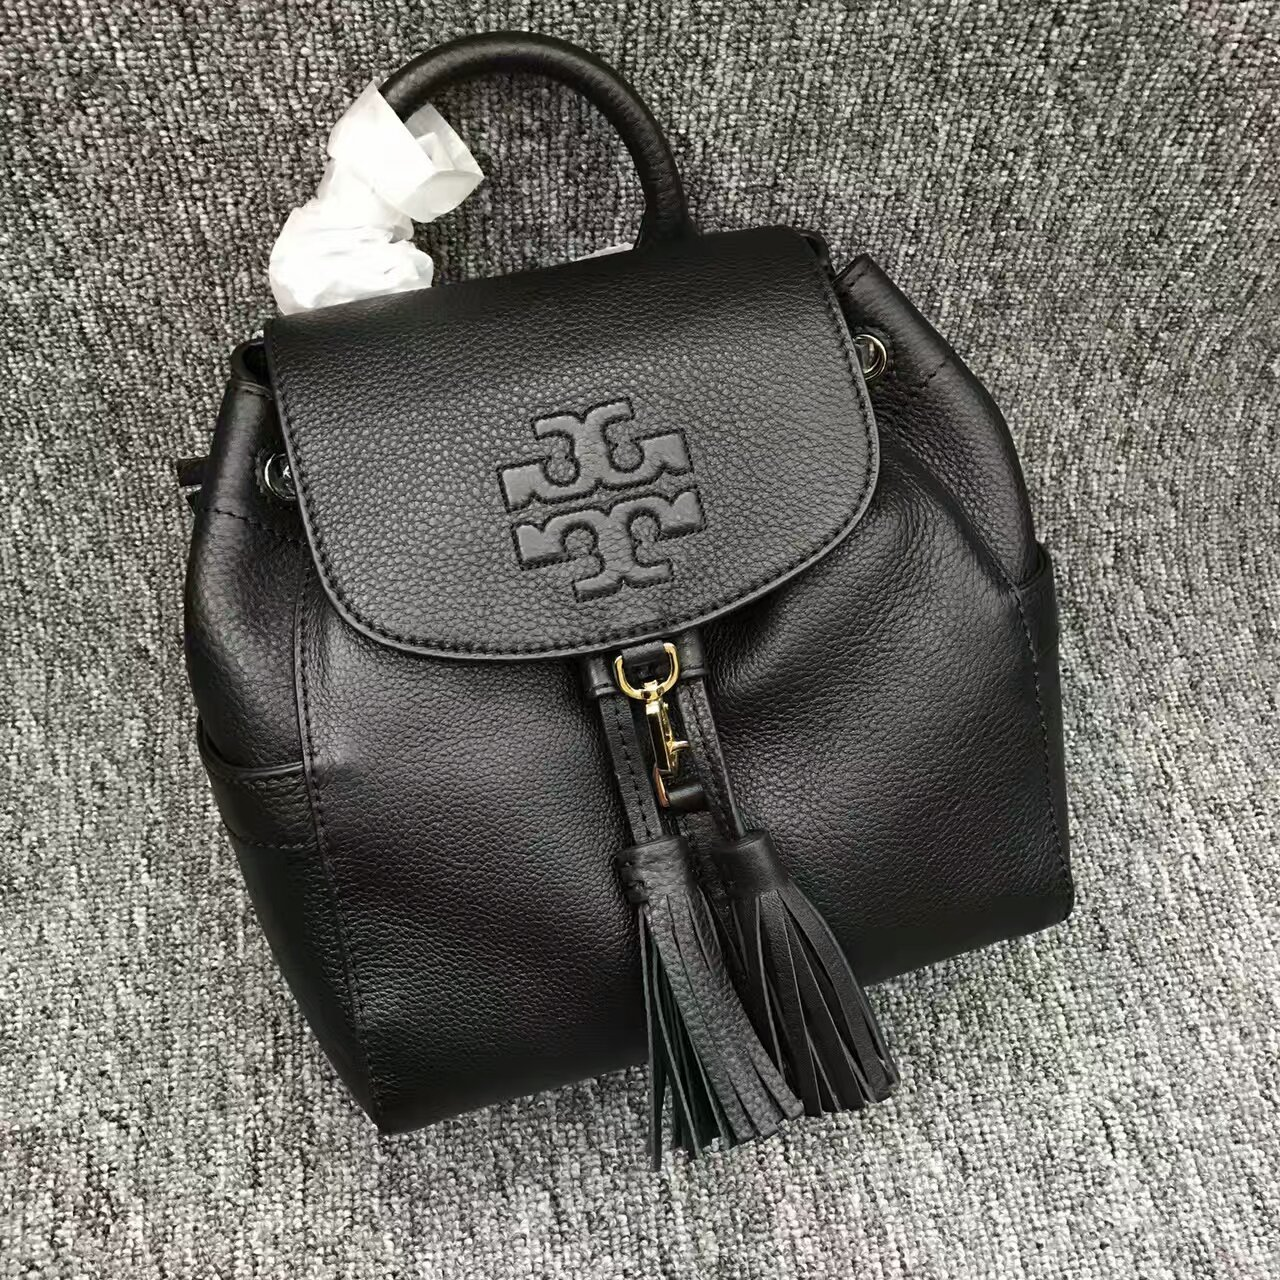 de00428791d Authentic Black Tory Burch Thea Mini Backpack and 50 similar items.  Mmexport1481876303119. Mmexport1481876303119